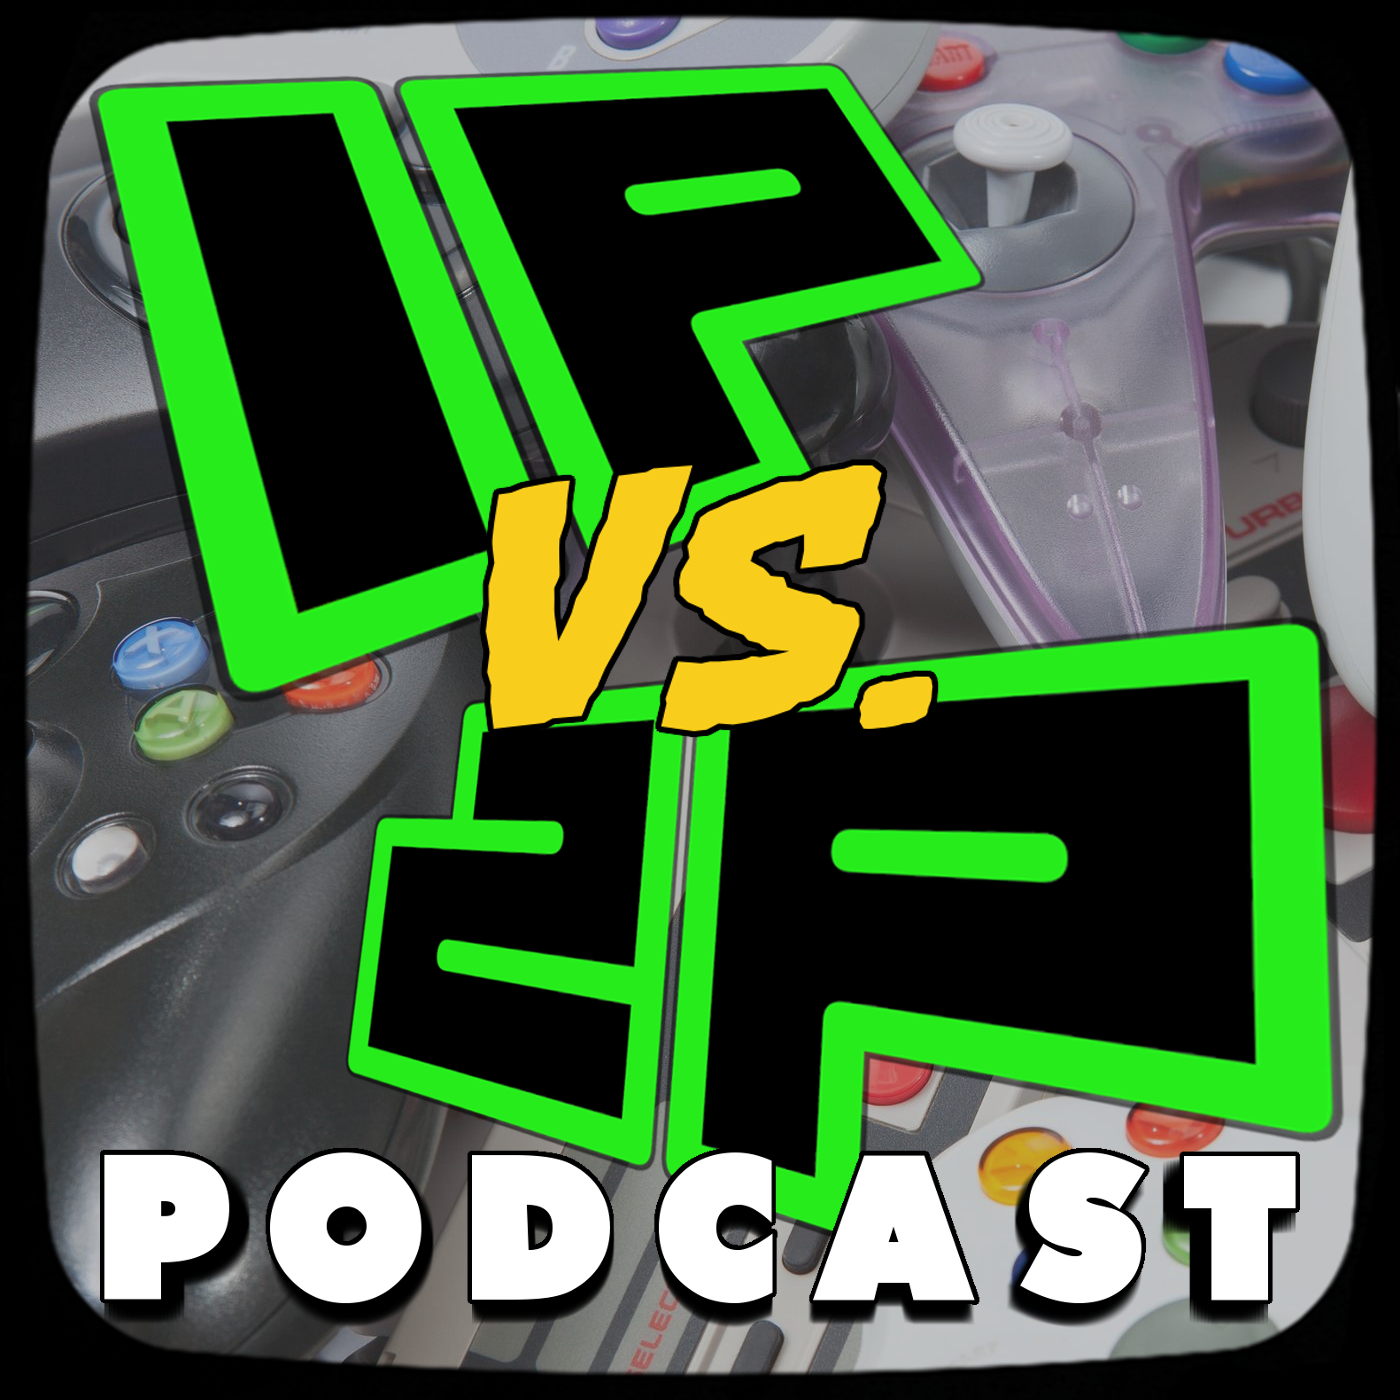 Video Game News | Reviews | History | Culture | Music - 1P vs. 2P Podcast